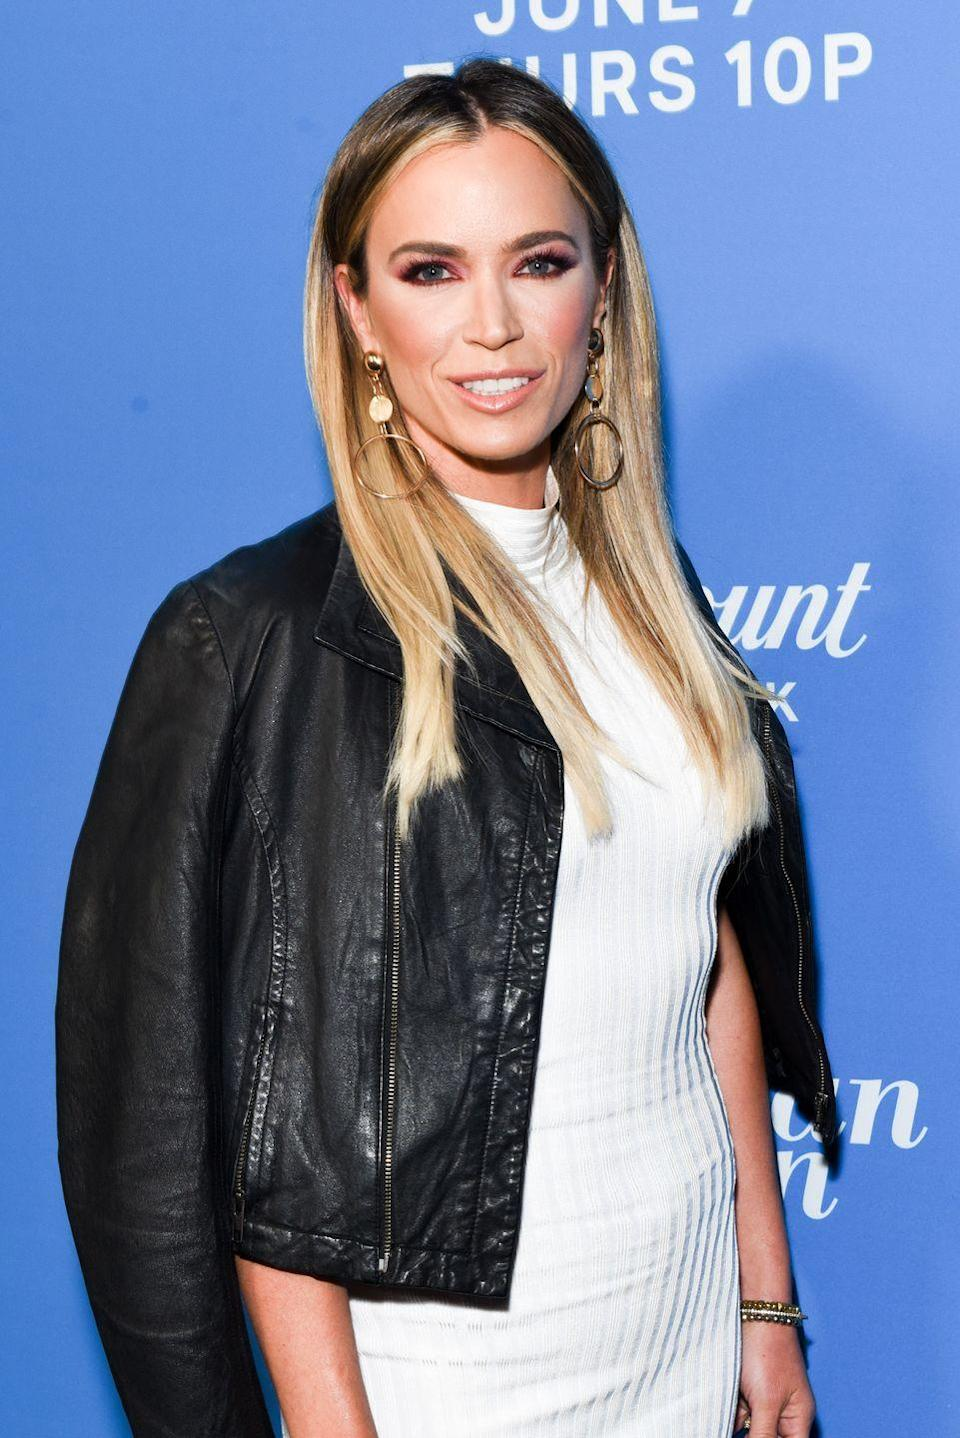 """<p>Teddi Mellencamp is the latest in a string of Housewives to fall from grace. After a rocky season 9 <em>and</em> season 10 on the <em>Real Housewives of Beverly Hills</em>, rumors flurried about her removal from the cast (there were even <a href=""""https://www.change.org/p/bravo-andycohen-fire-kyle-and-teddi-from-rhobh"""" rel=""""nofollow noopener"""" target=""""_blank"""" data-ylk=""""slk:petitions"""" class=""""link rapid-noclick-resp"""">petitions</a>). Shorty after season 10 wrapped, Teddi's weight loss program, All In by Teddi, came under fire when clients claimed that All In would restrict them to eating 500-1,000 calories a day. Alas, it came as no surprise when Teddi announced on Sept. 22, 2020, that her contract had not been renewed a fourth season. </p><p>""""I figured I could give you a little update on what's going on,"""" she shared in the Instagram <a href=""""https://www.instagram.com/p/CFdMJ6bBsqM/"""" rel=""""nofollow noopener"""" target=""""_blank"""" data-ylk=""""slk:video"""" class=""""link rapid-noclick-resp"""">video</a>. """"I recently found out that my contract as a Housewife is not being renewed. Of course I could give you the standard response of, 'Oh we both came to the decision that it would be best.' Nah, I'm not going to do that — that's not who I am. Of course when I got the news I was sad. It feels like a breakup, almost,"""" she said. Hey, at least she's honest! </p>"""